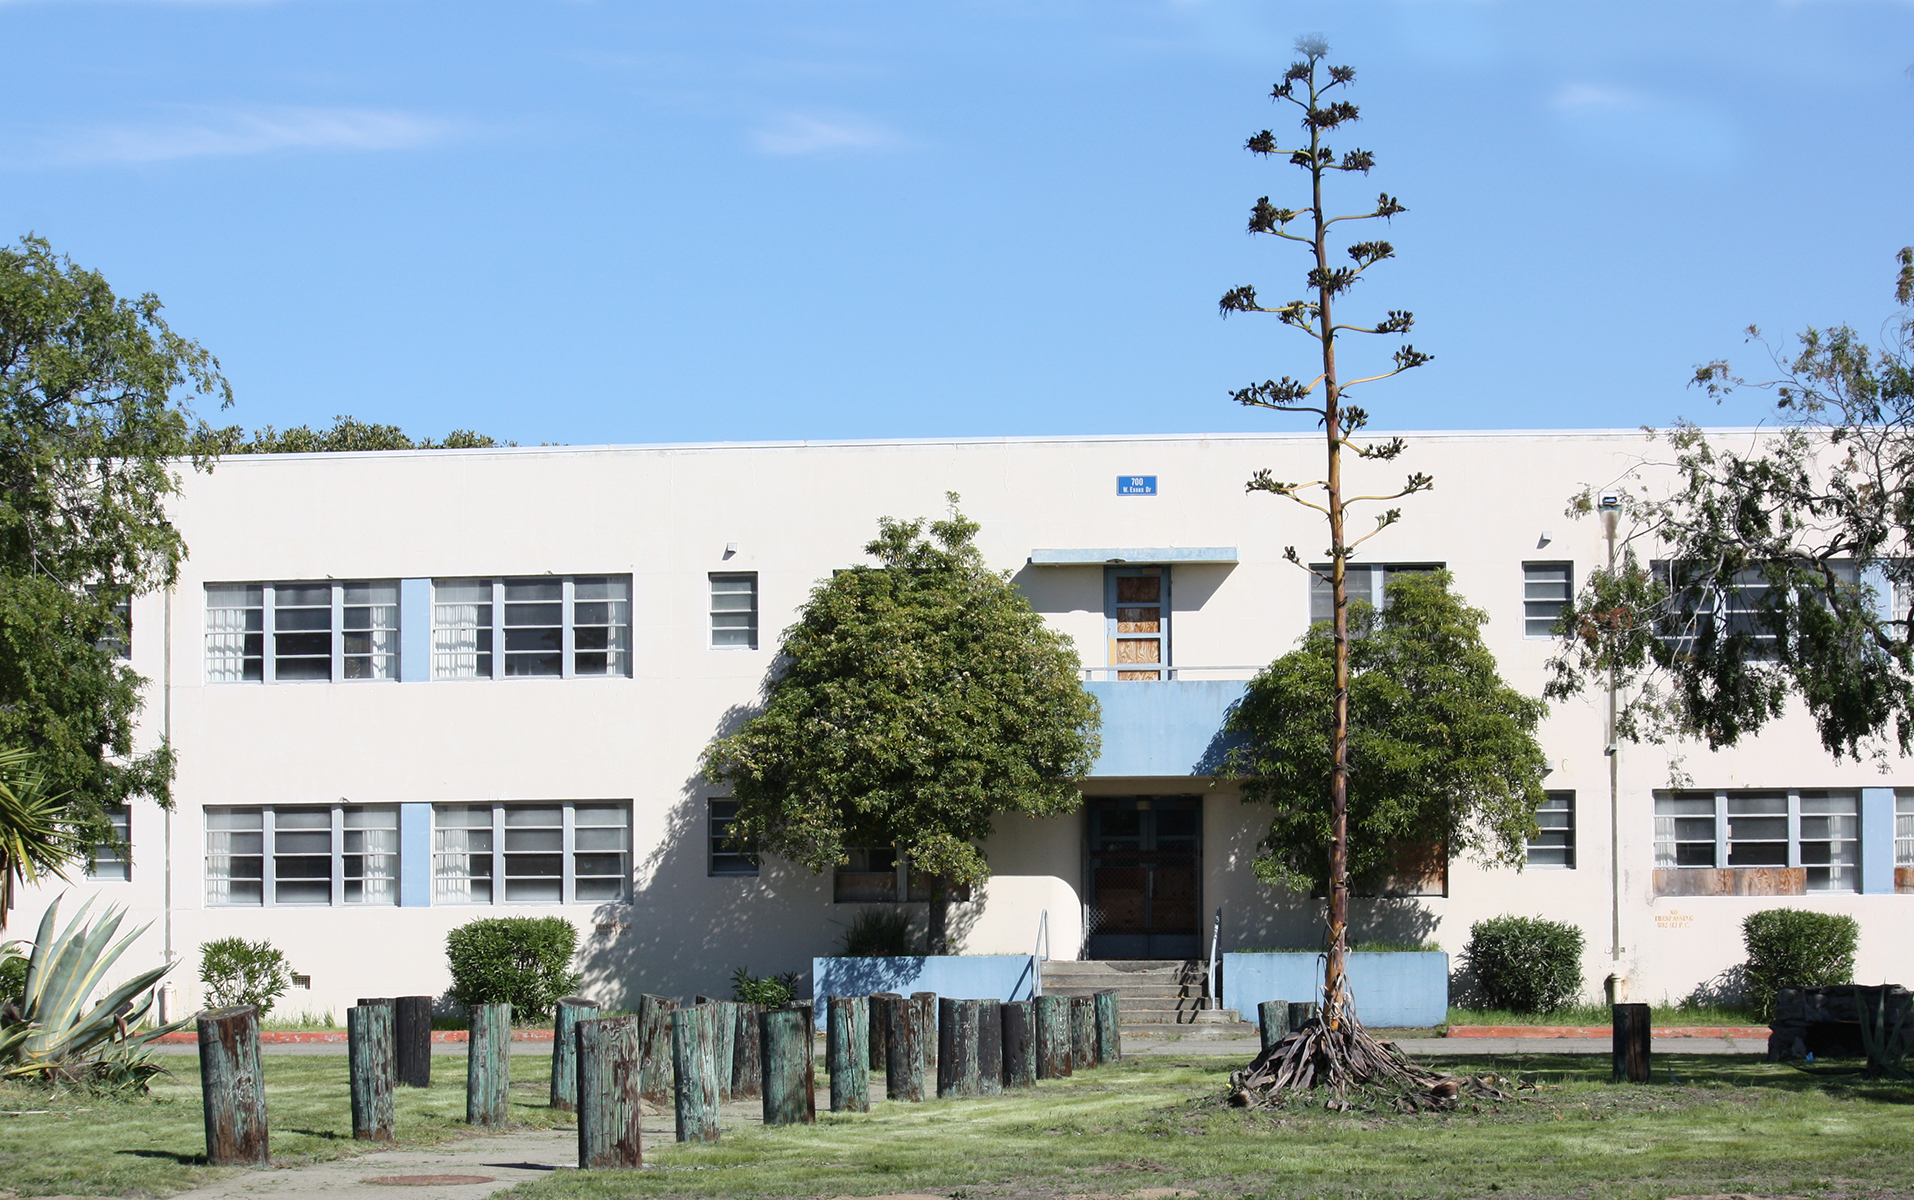 Photo by Dennis Evanosky A century plant has breathed its last in front of the Todd Street entrance to the Bachelor Officers Quarters on Alameda Point. The school district hopes to breathe new life into this building.